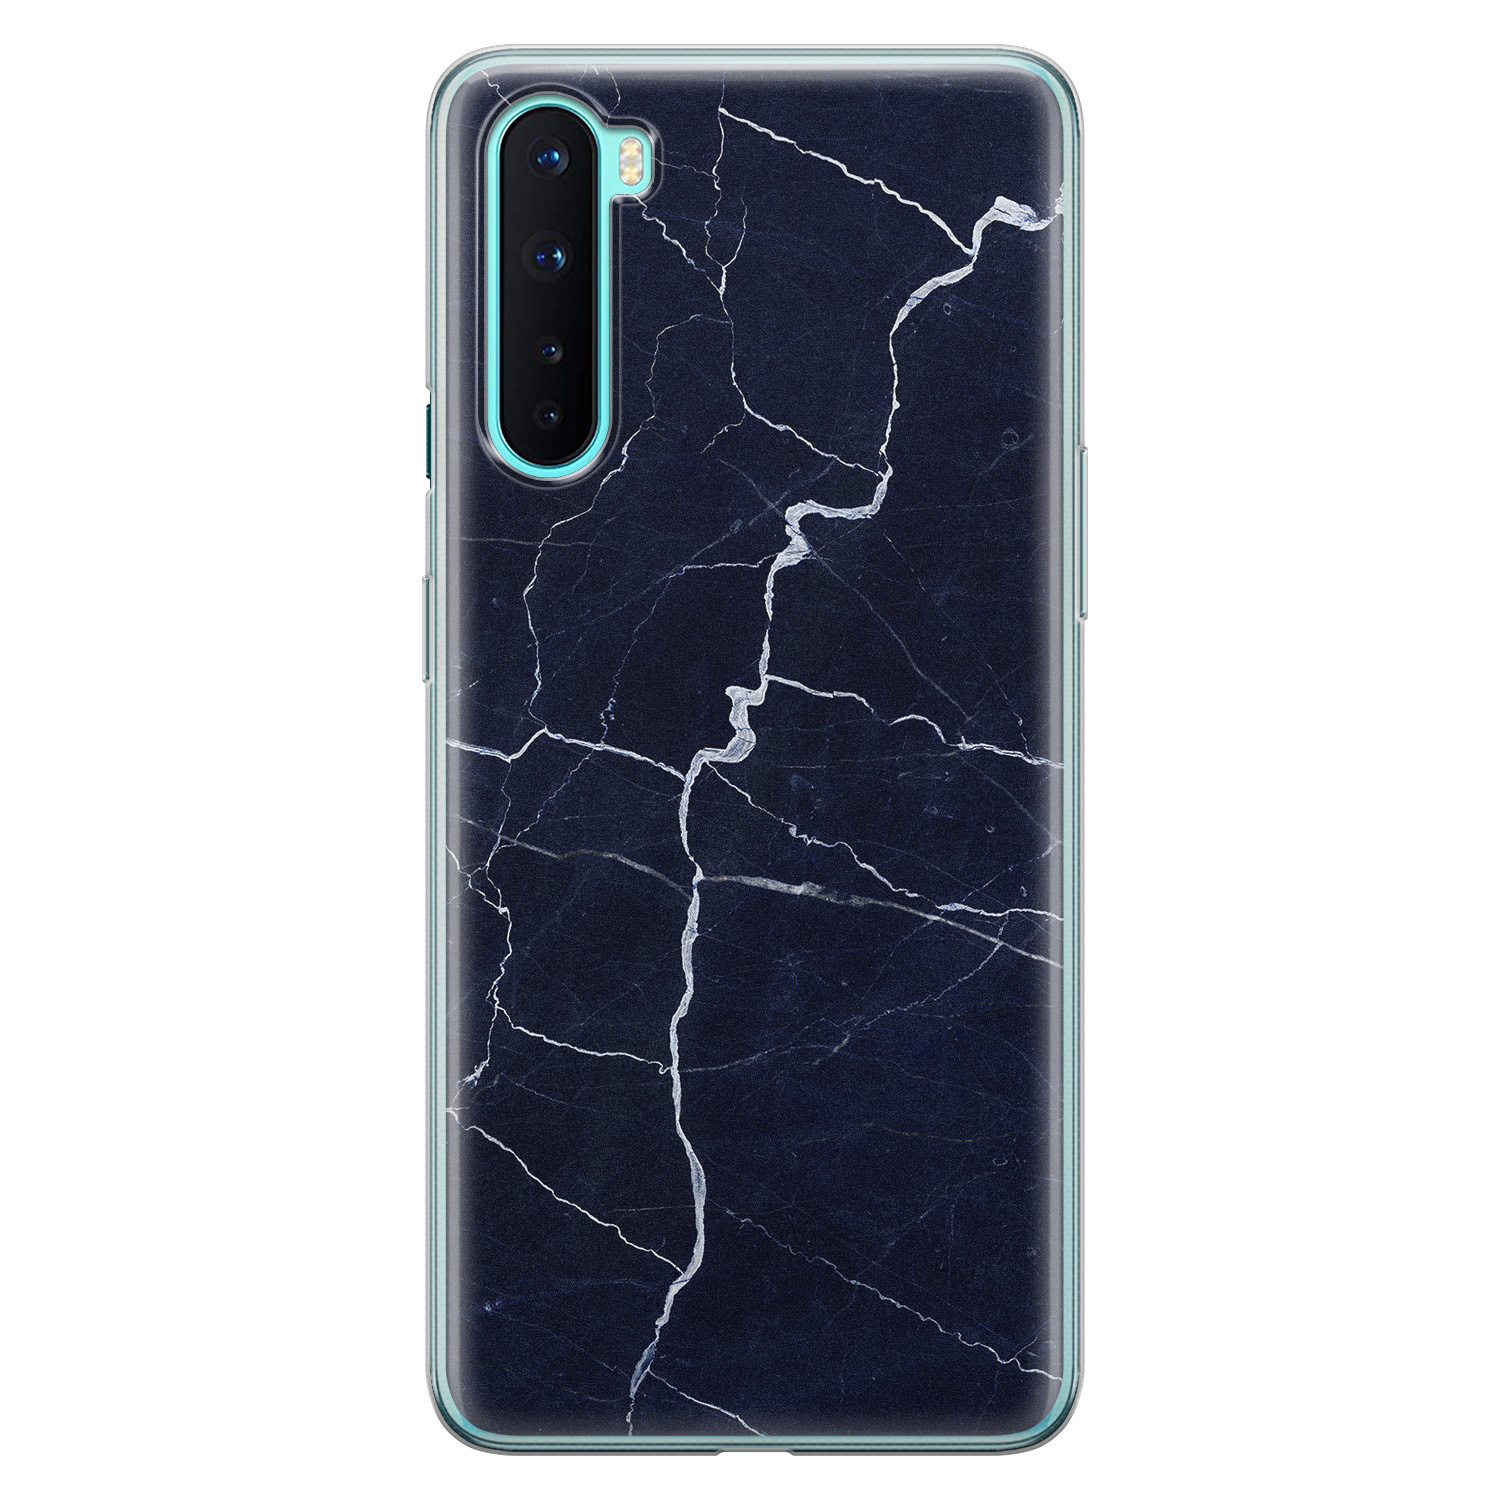 OnePlus Nord siliconen hoesje - Marmer navy blauw